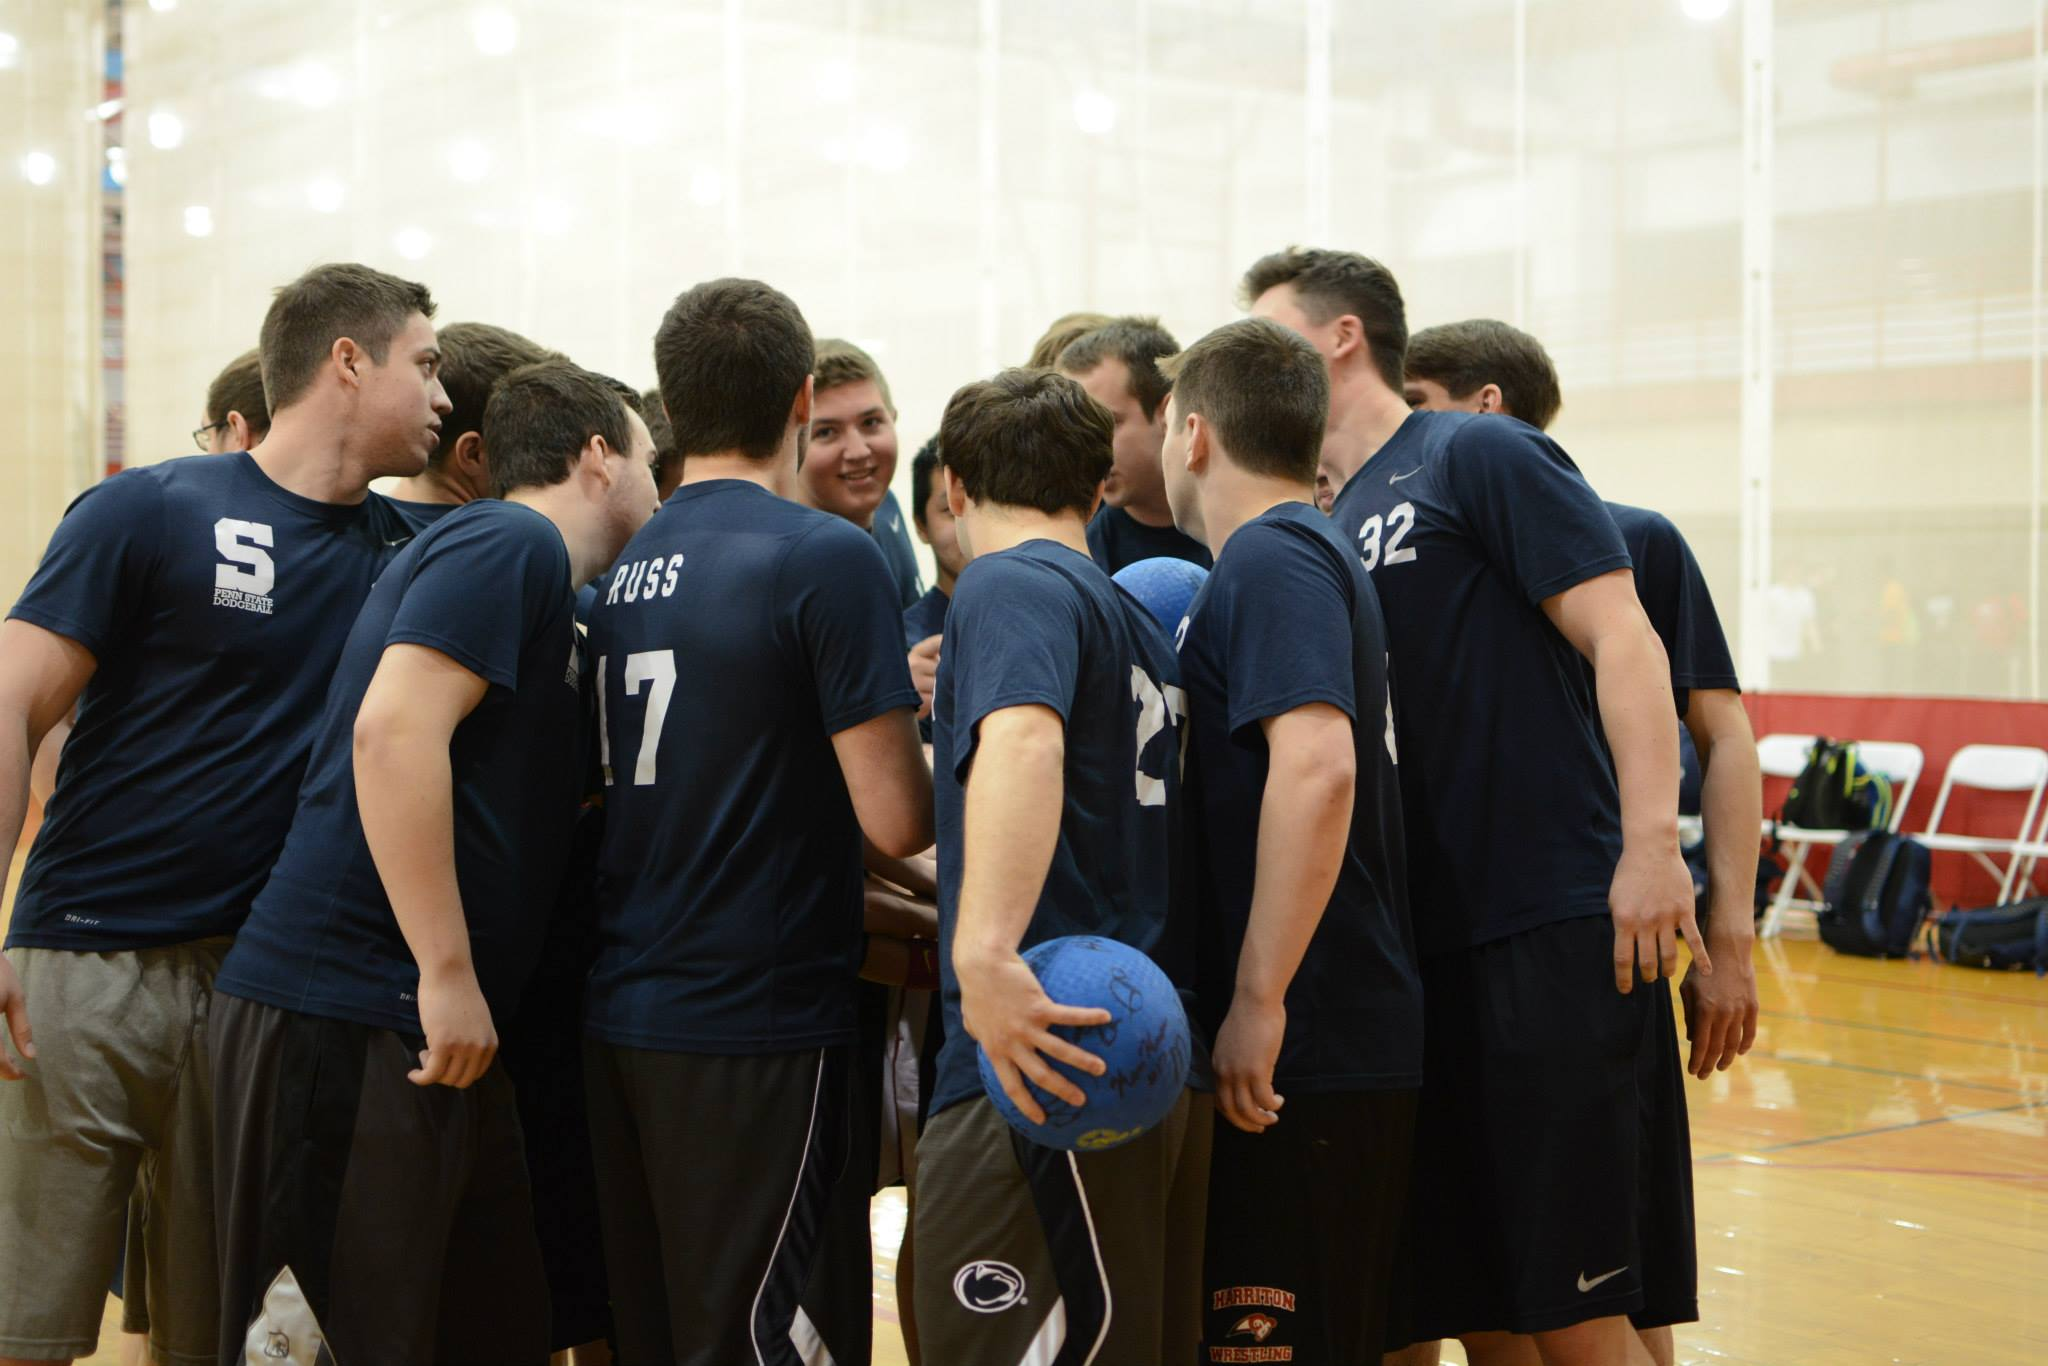 Penn State will need to attend more tournaments this year if they hope to make real progress this season